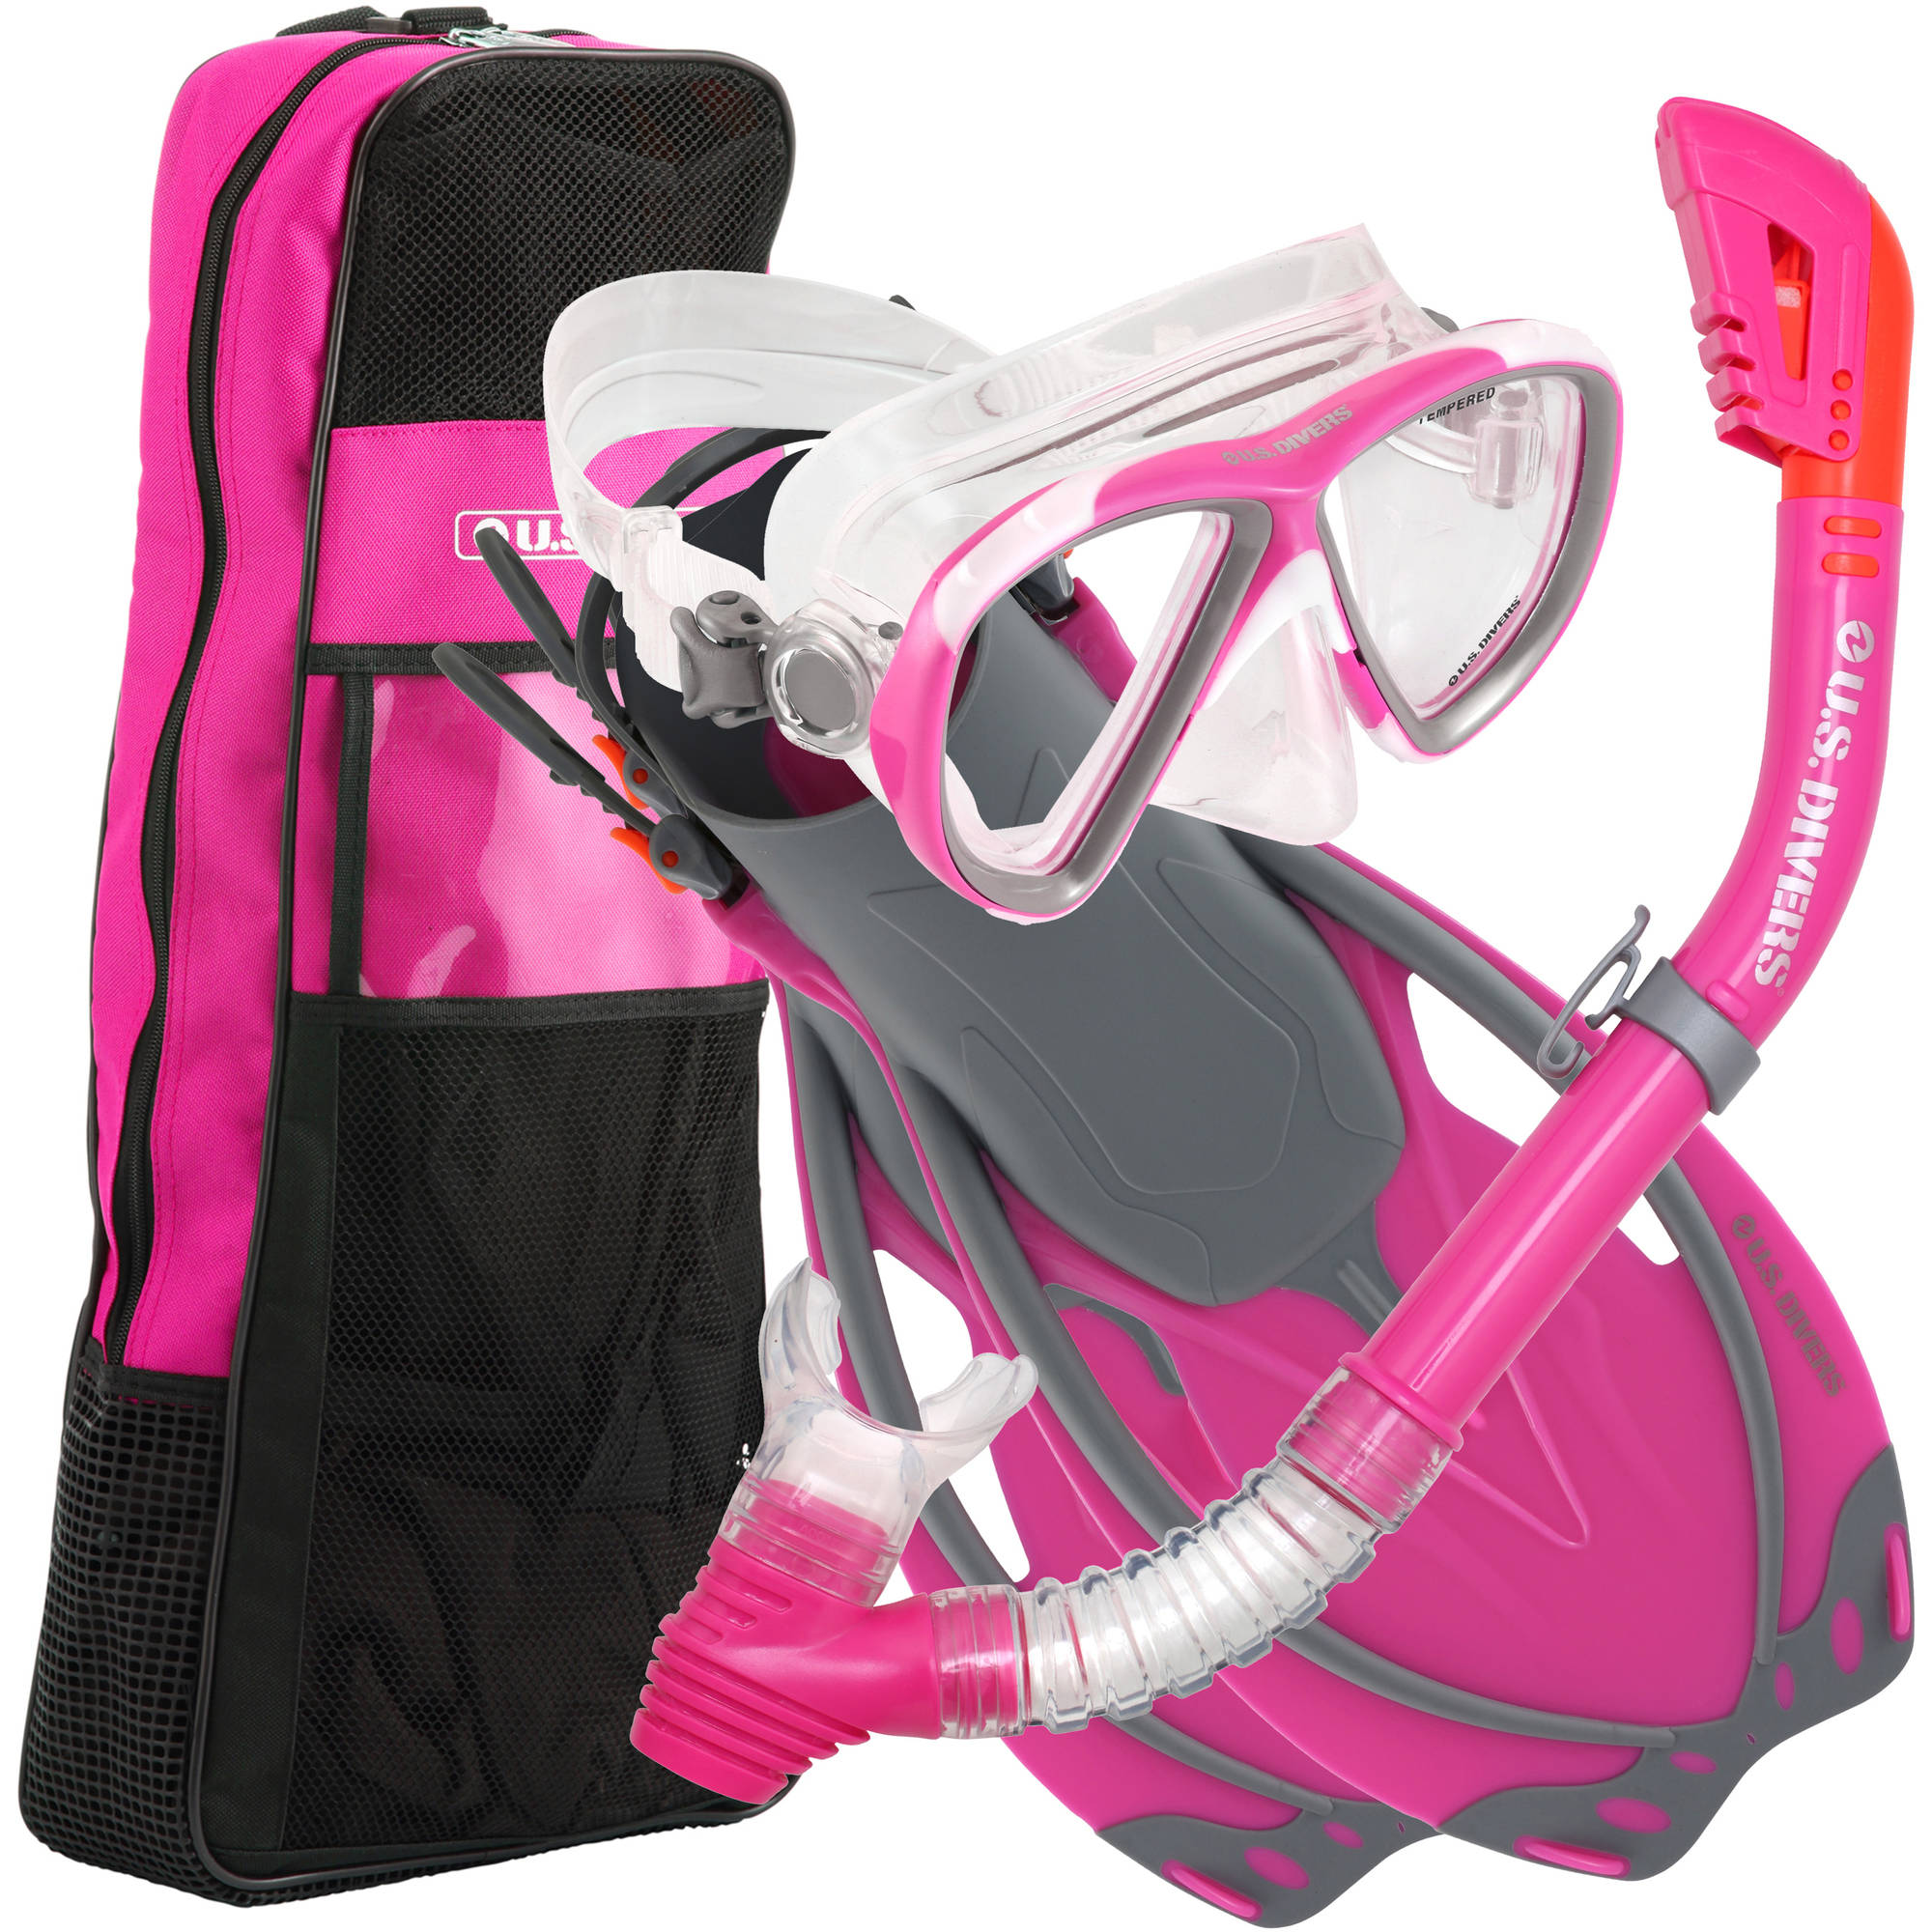 US Divers Premium Beli Lady Snorkeling Set